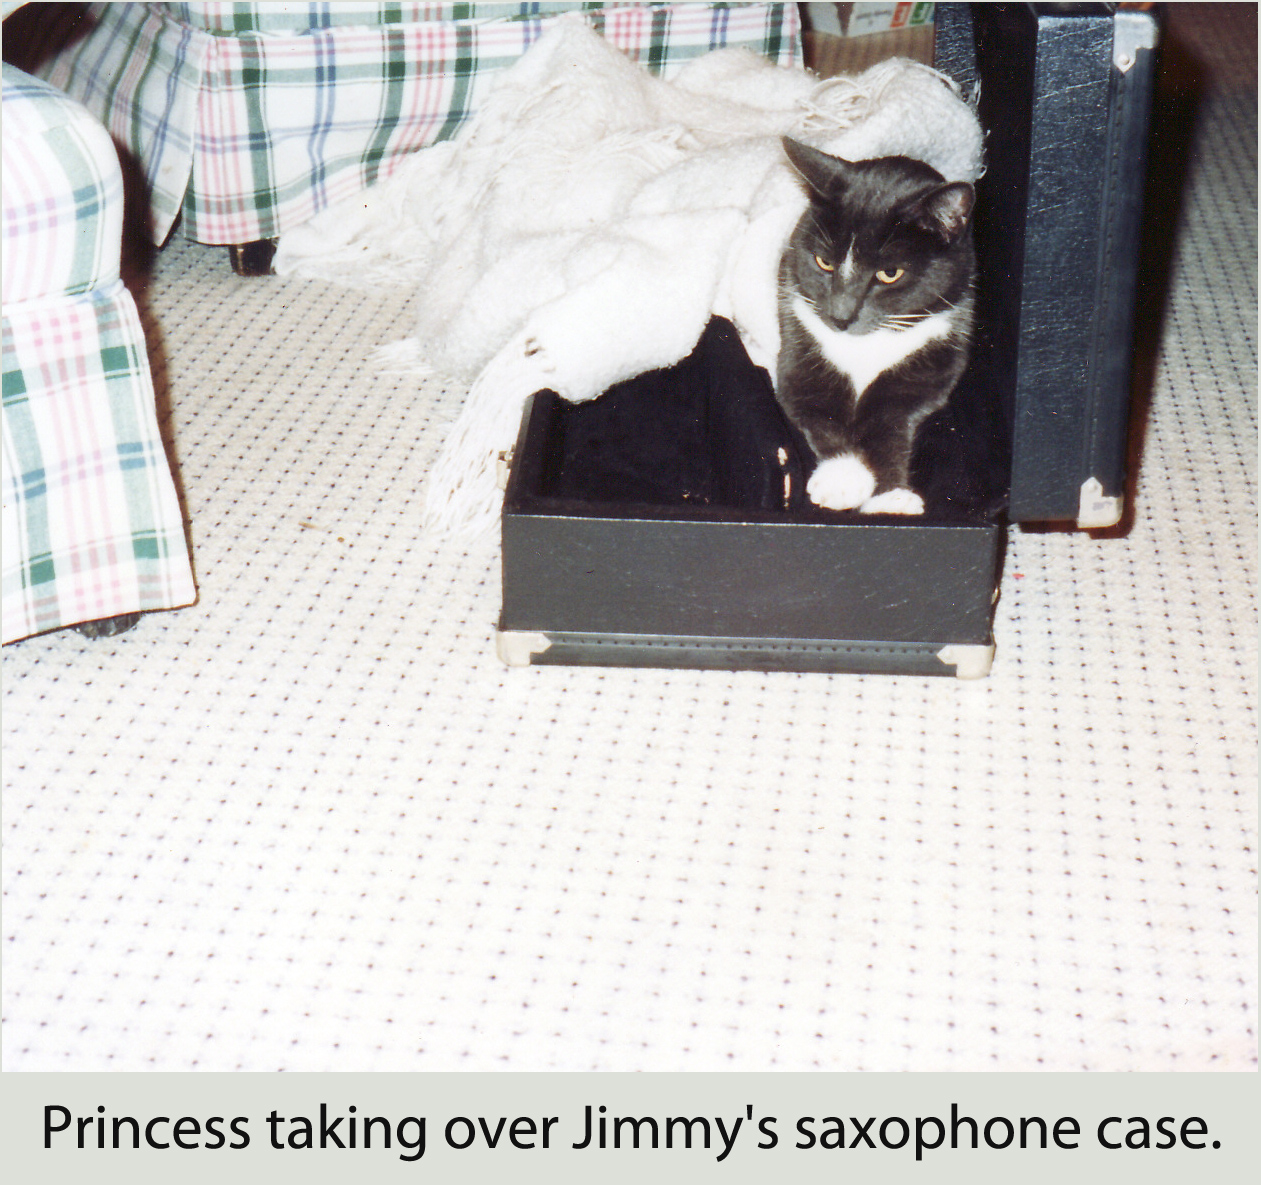 Princess hanging out in Jimmy's saxophone case